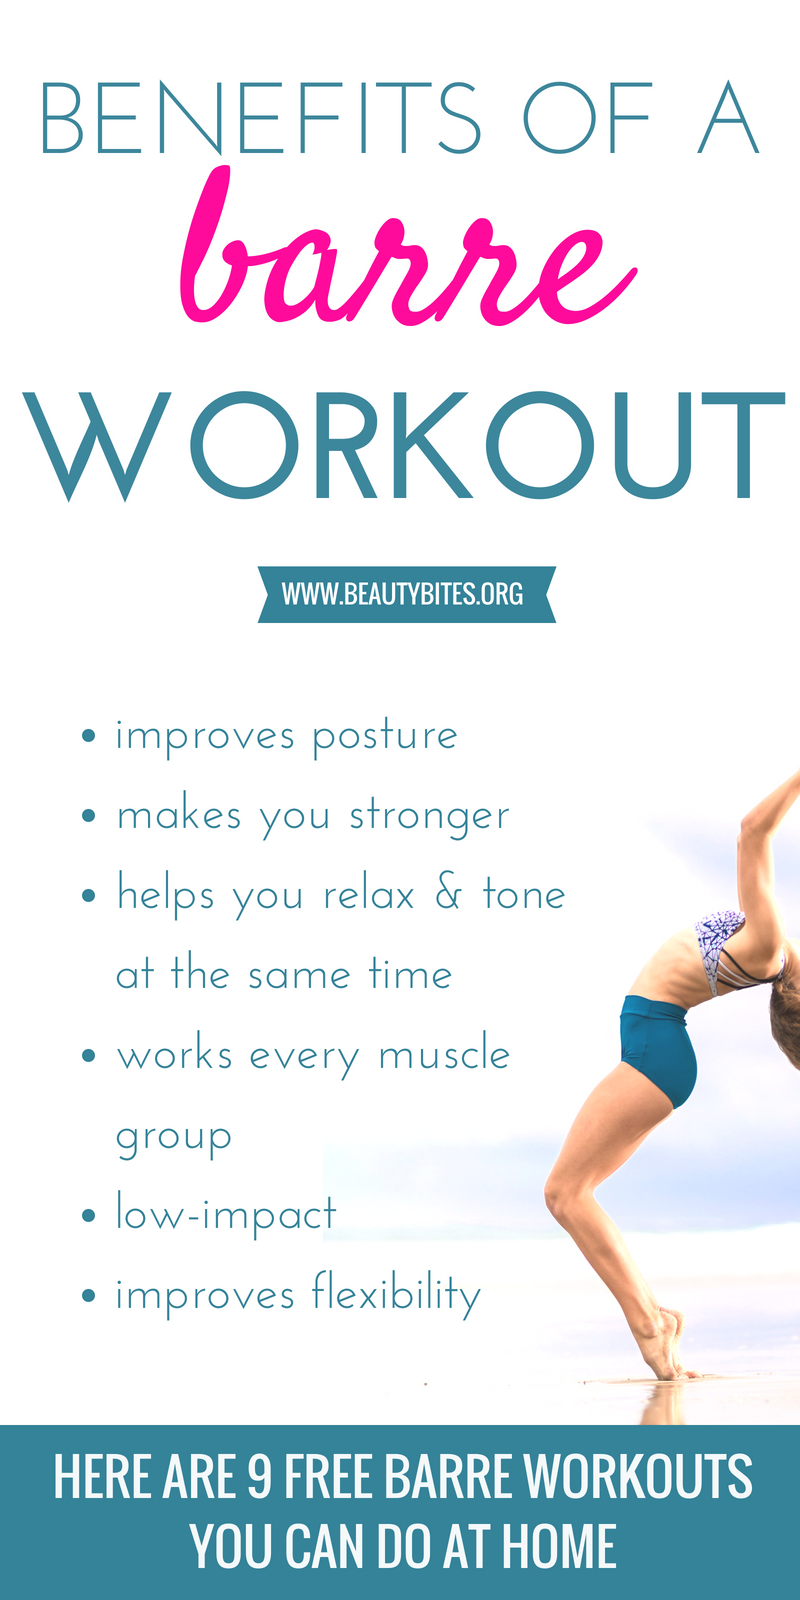 Benefits of barre exercise - improve your strength, posture, feel relaxed and get toned by including barre workouts in your workout plan. I share 9 free barre workouts you can do at home with almost no equipment, try a few and see how you feel! | www.beautybites.org | Healthy Habits & Workout Routines For Women